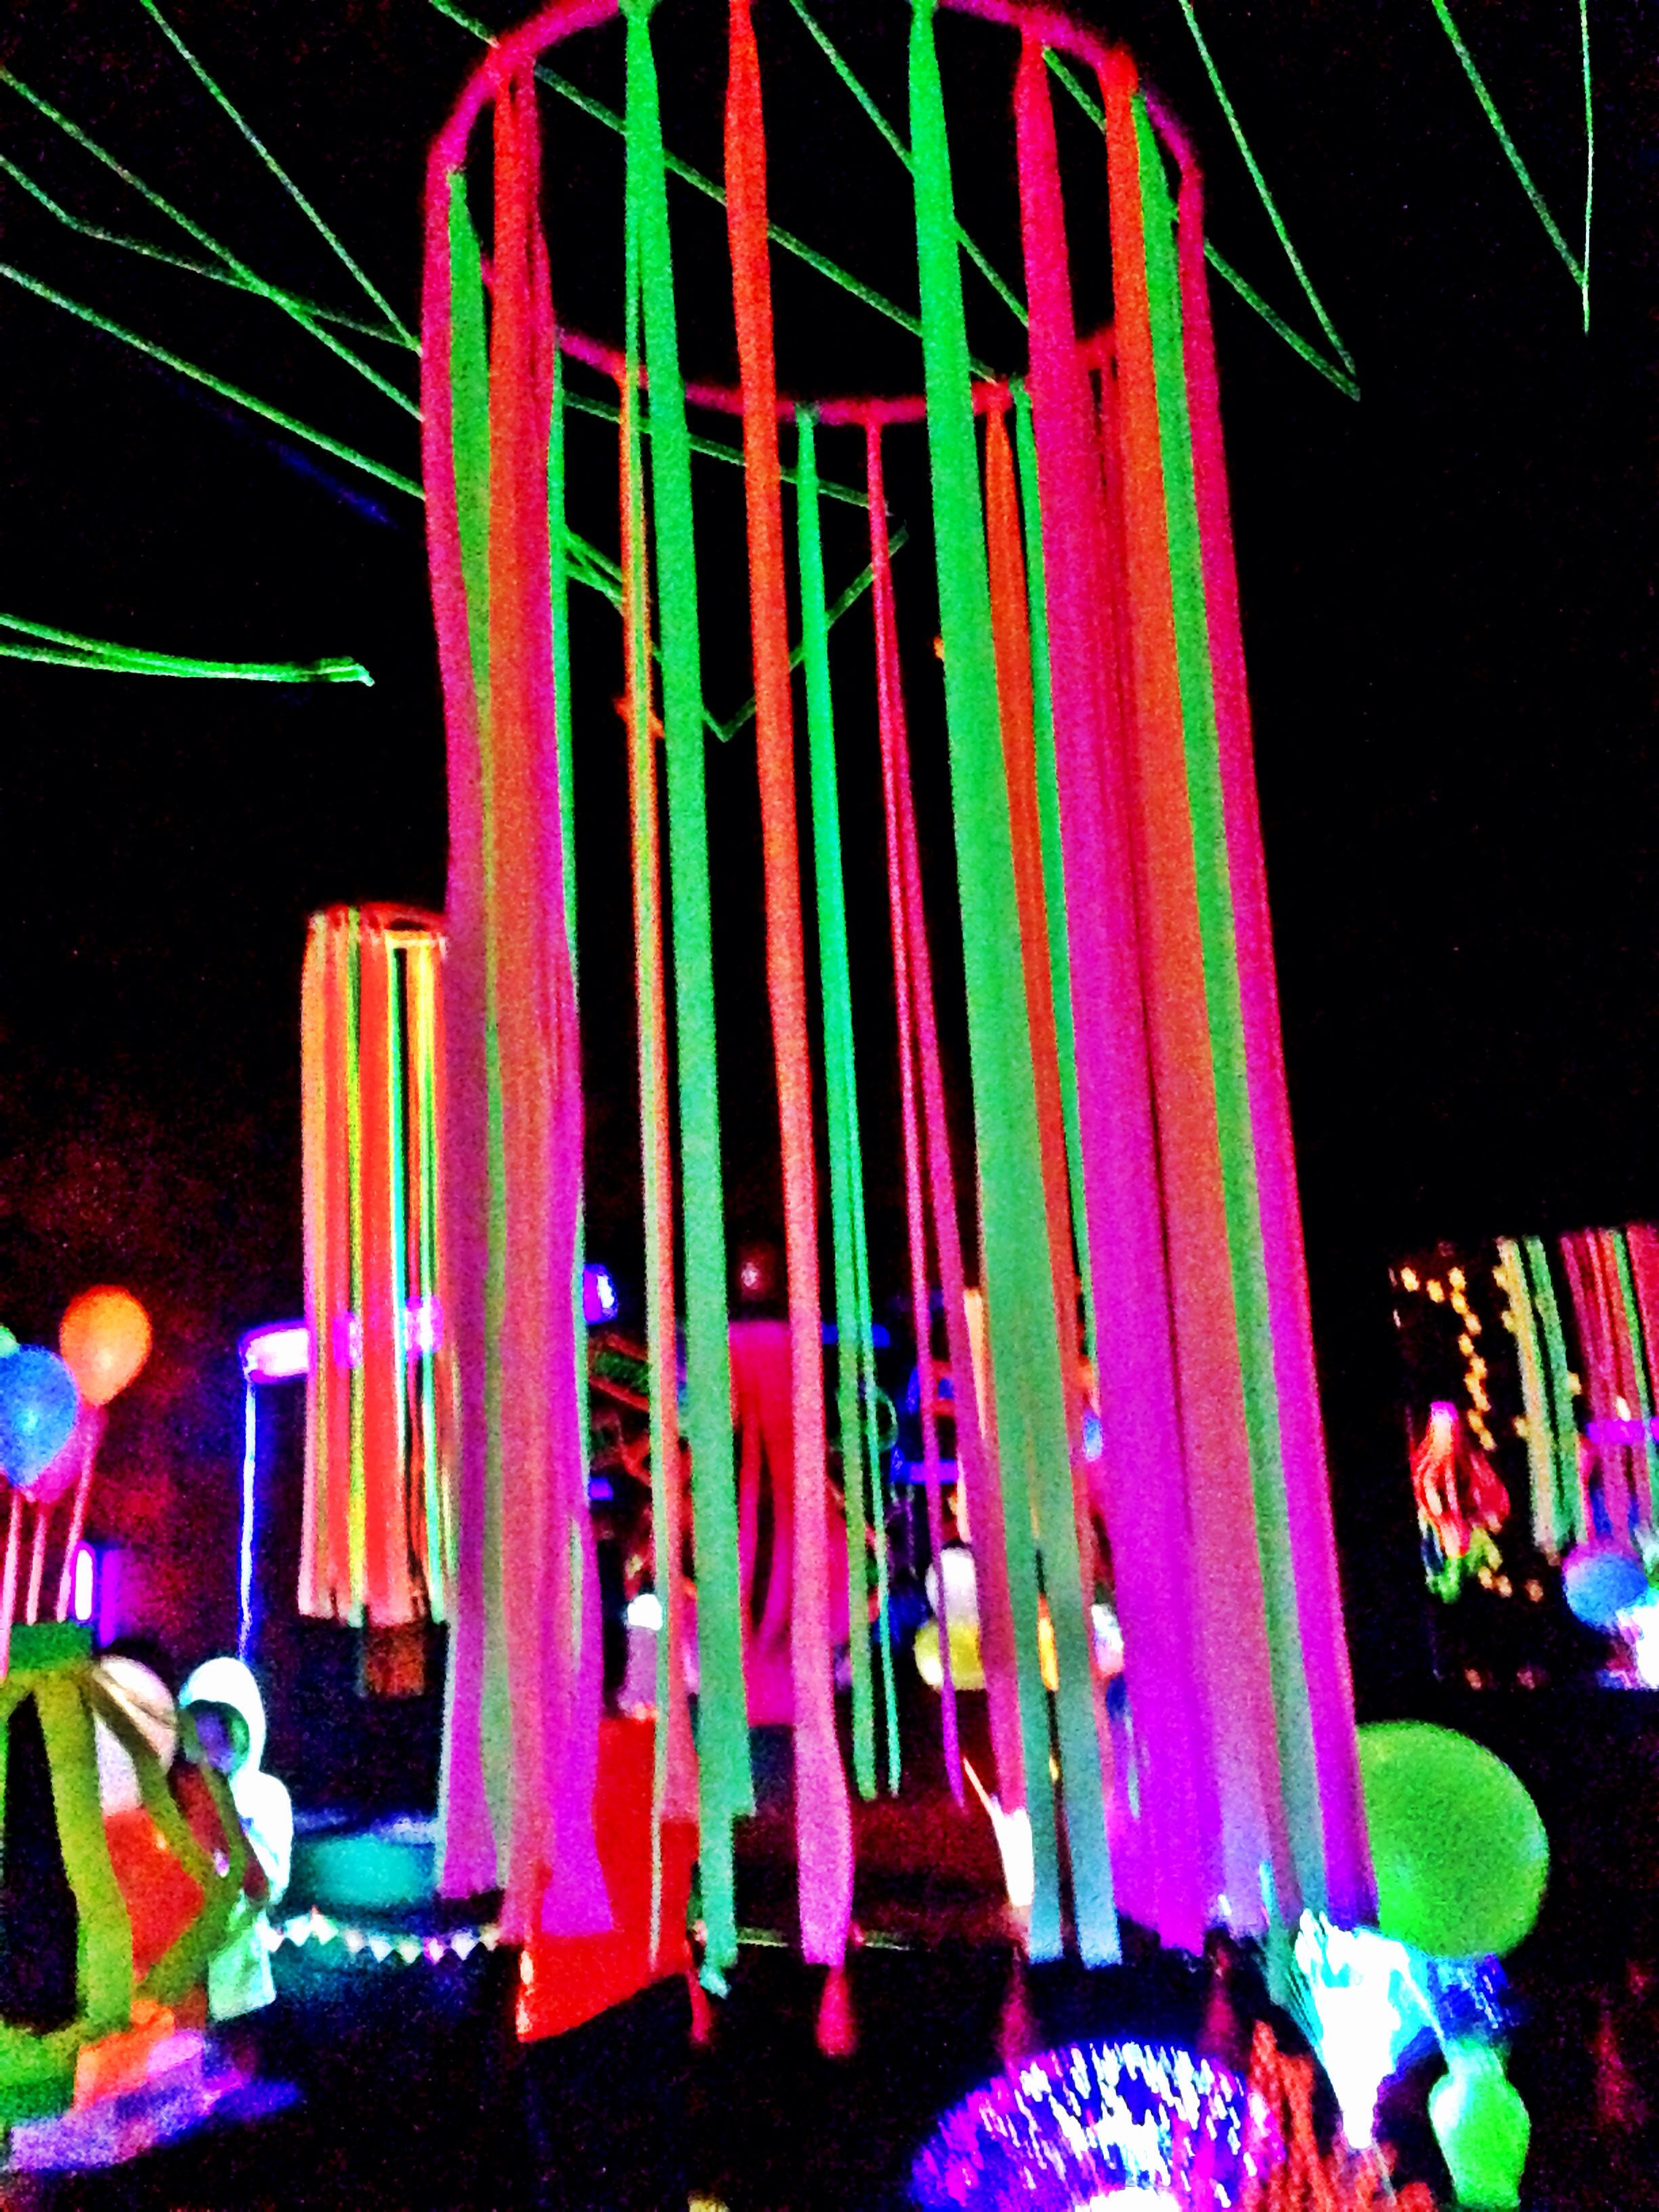 Neon Flagging Tape On Hulla Hoop Glow Party Decoration Fnid More Festival Rave And